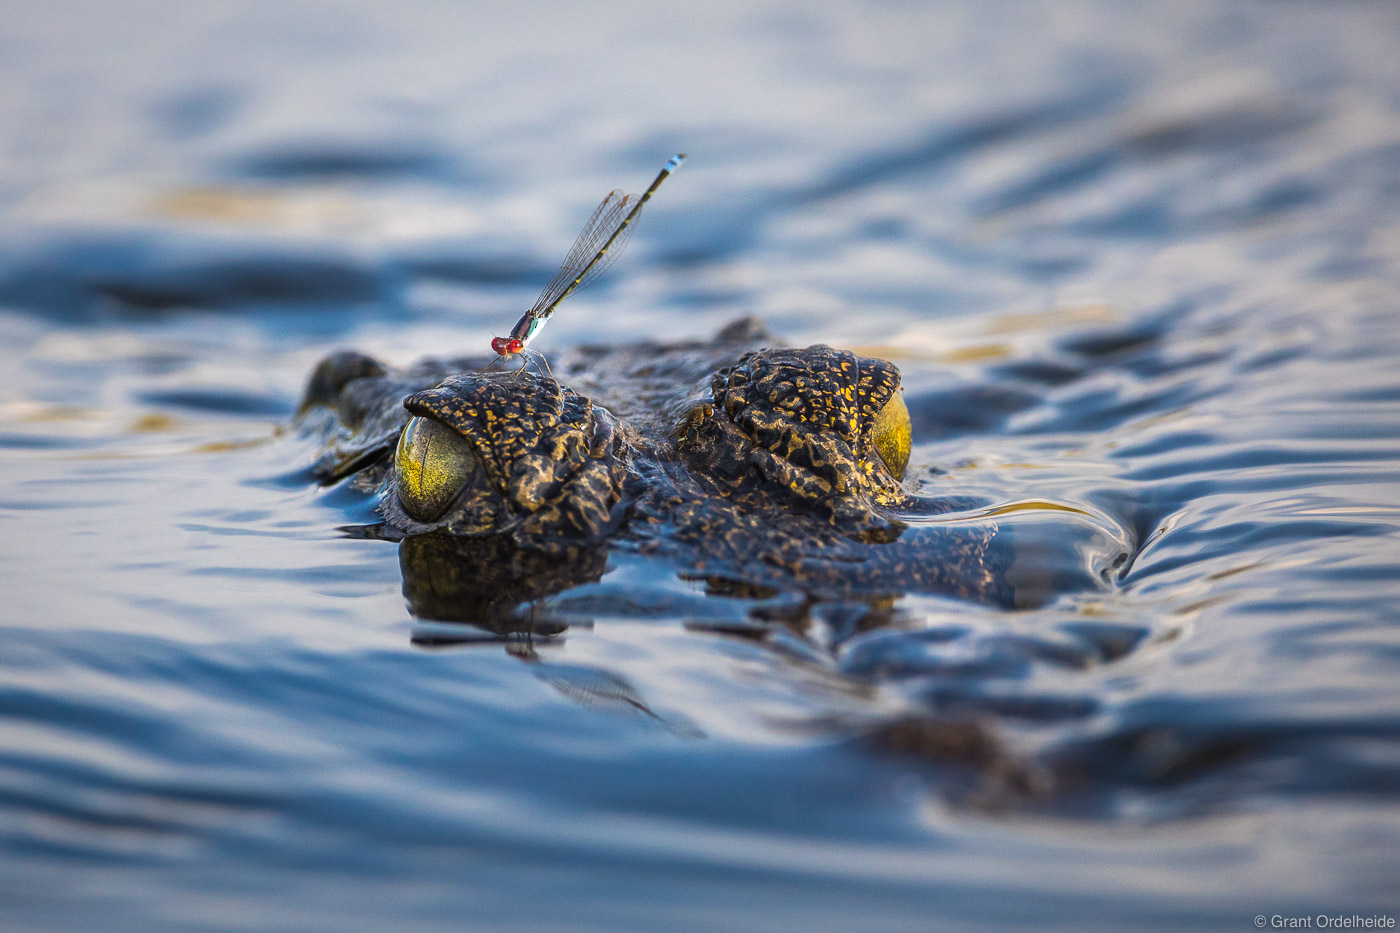 A damselfly catches a ride on the head of a small crocodile in the Okavango Delta.